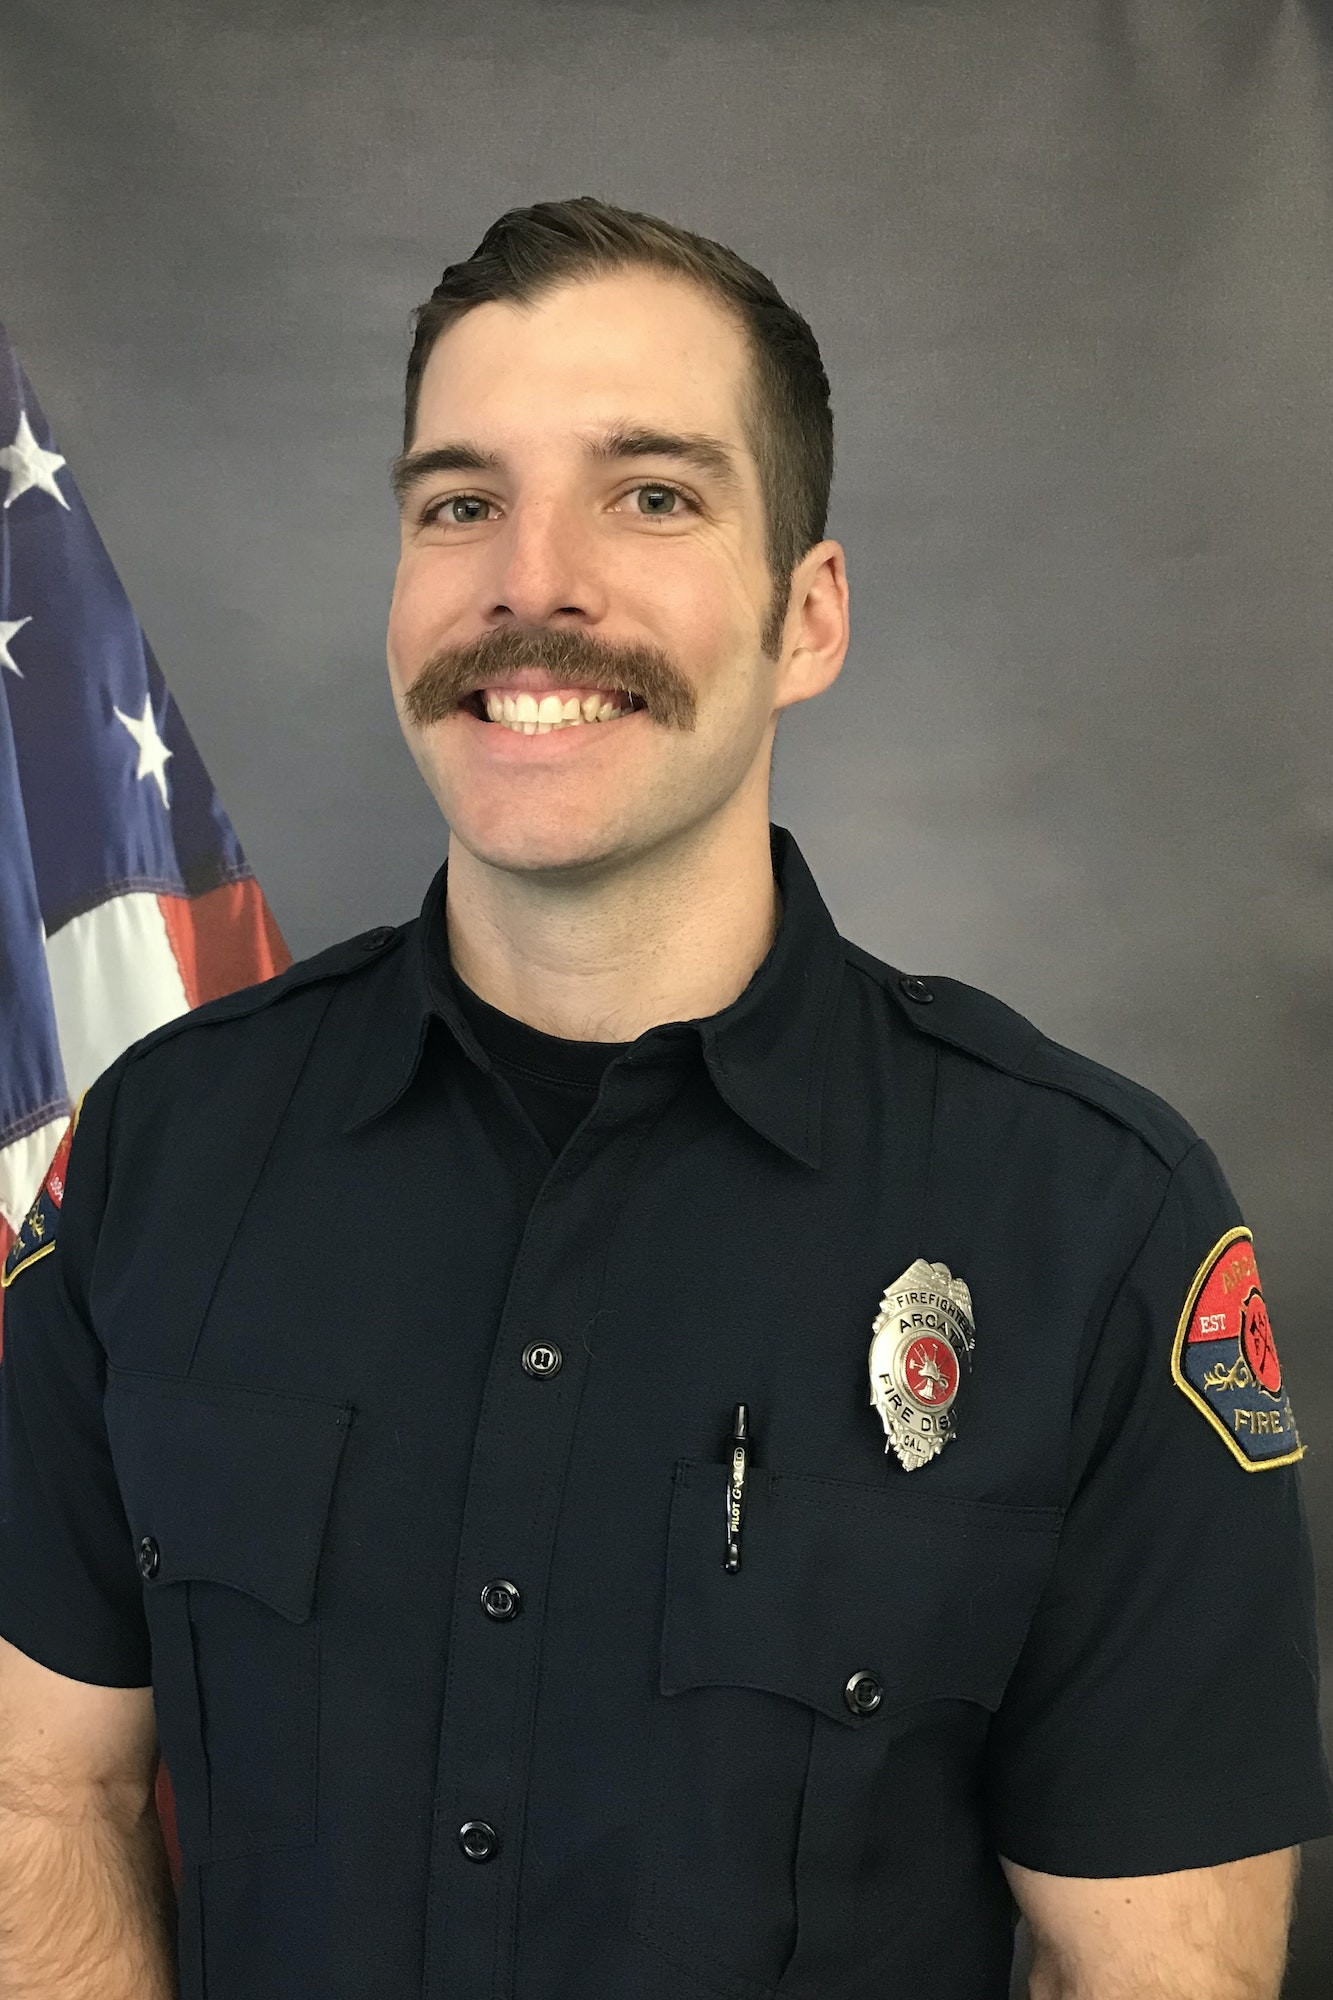 Staff photo of a Volunteer Fire Fighter.